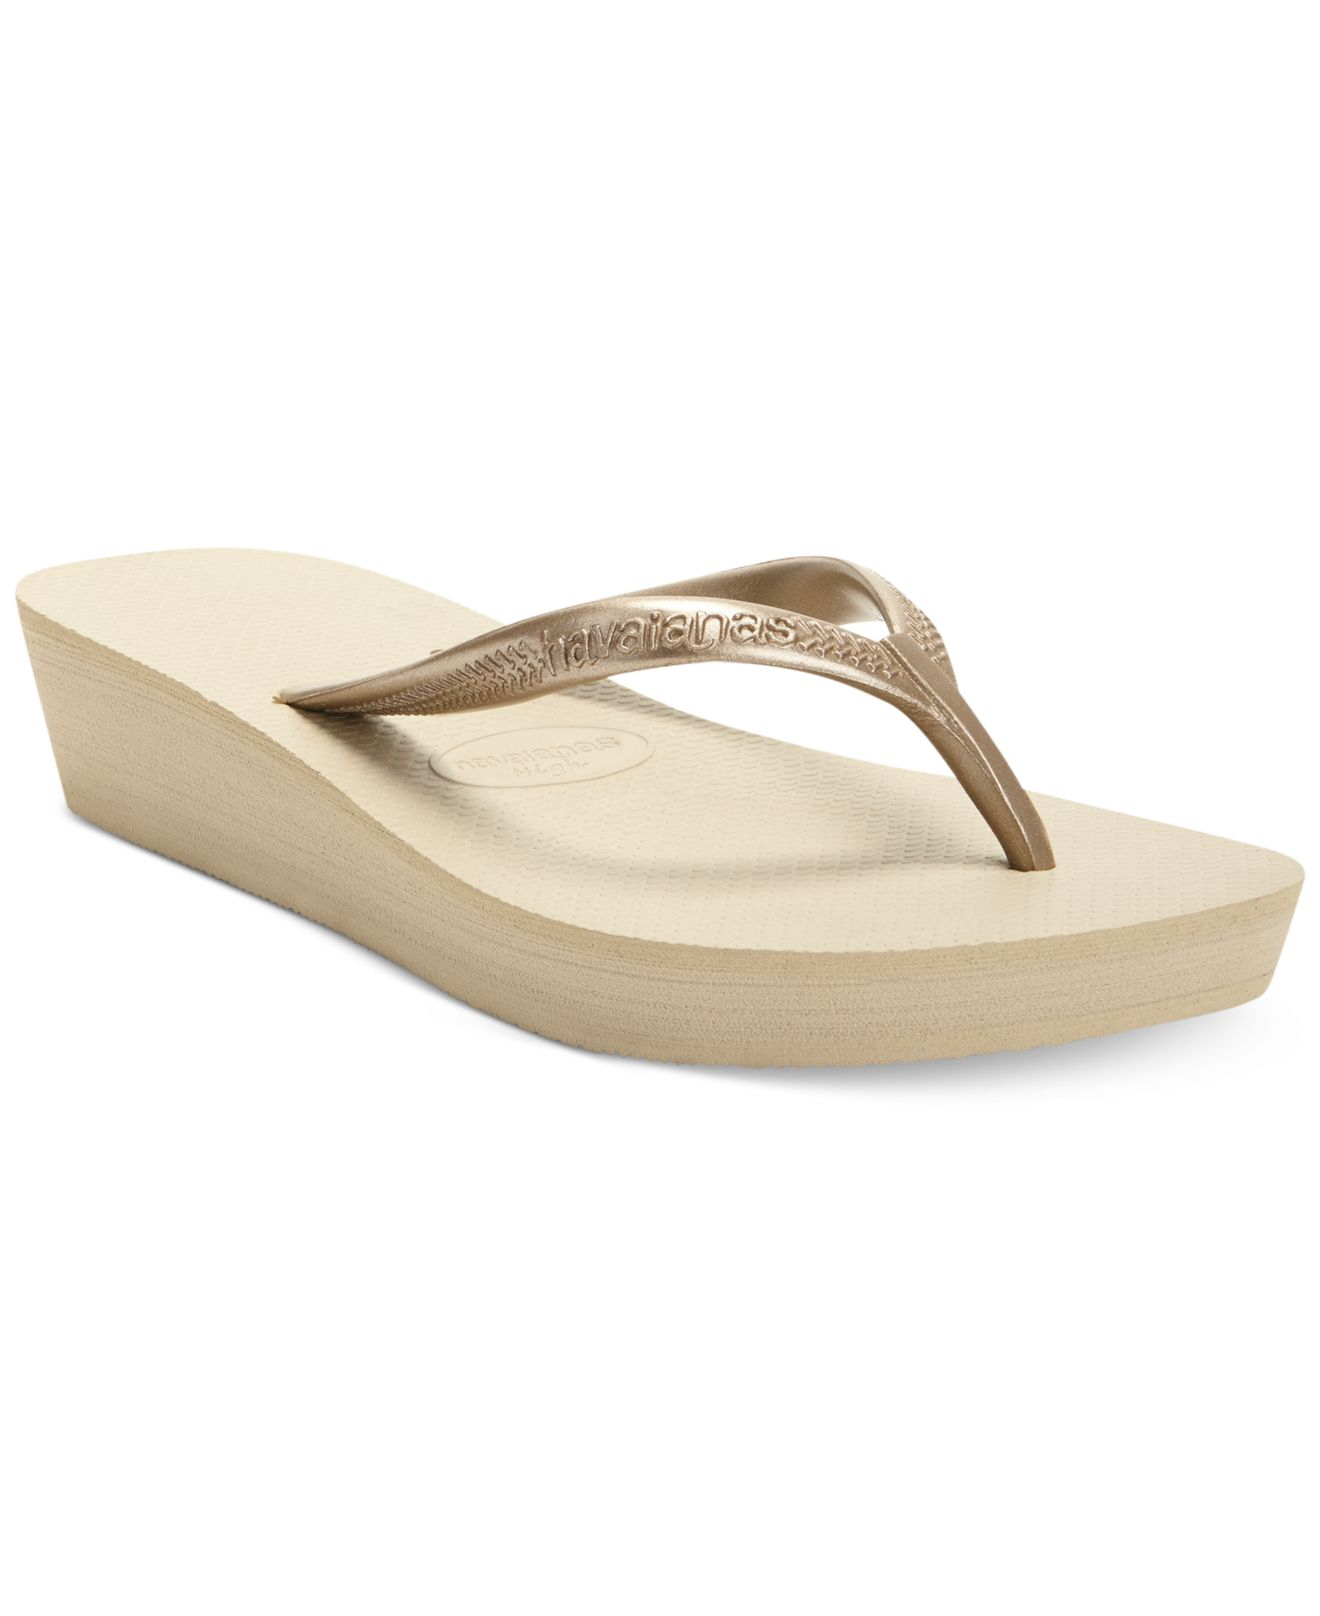 01184f00f Lyst - Havaianas High Light Platform Thong Sandals in Gray